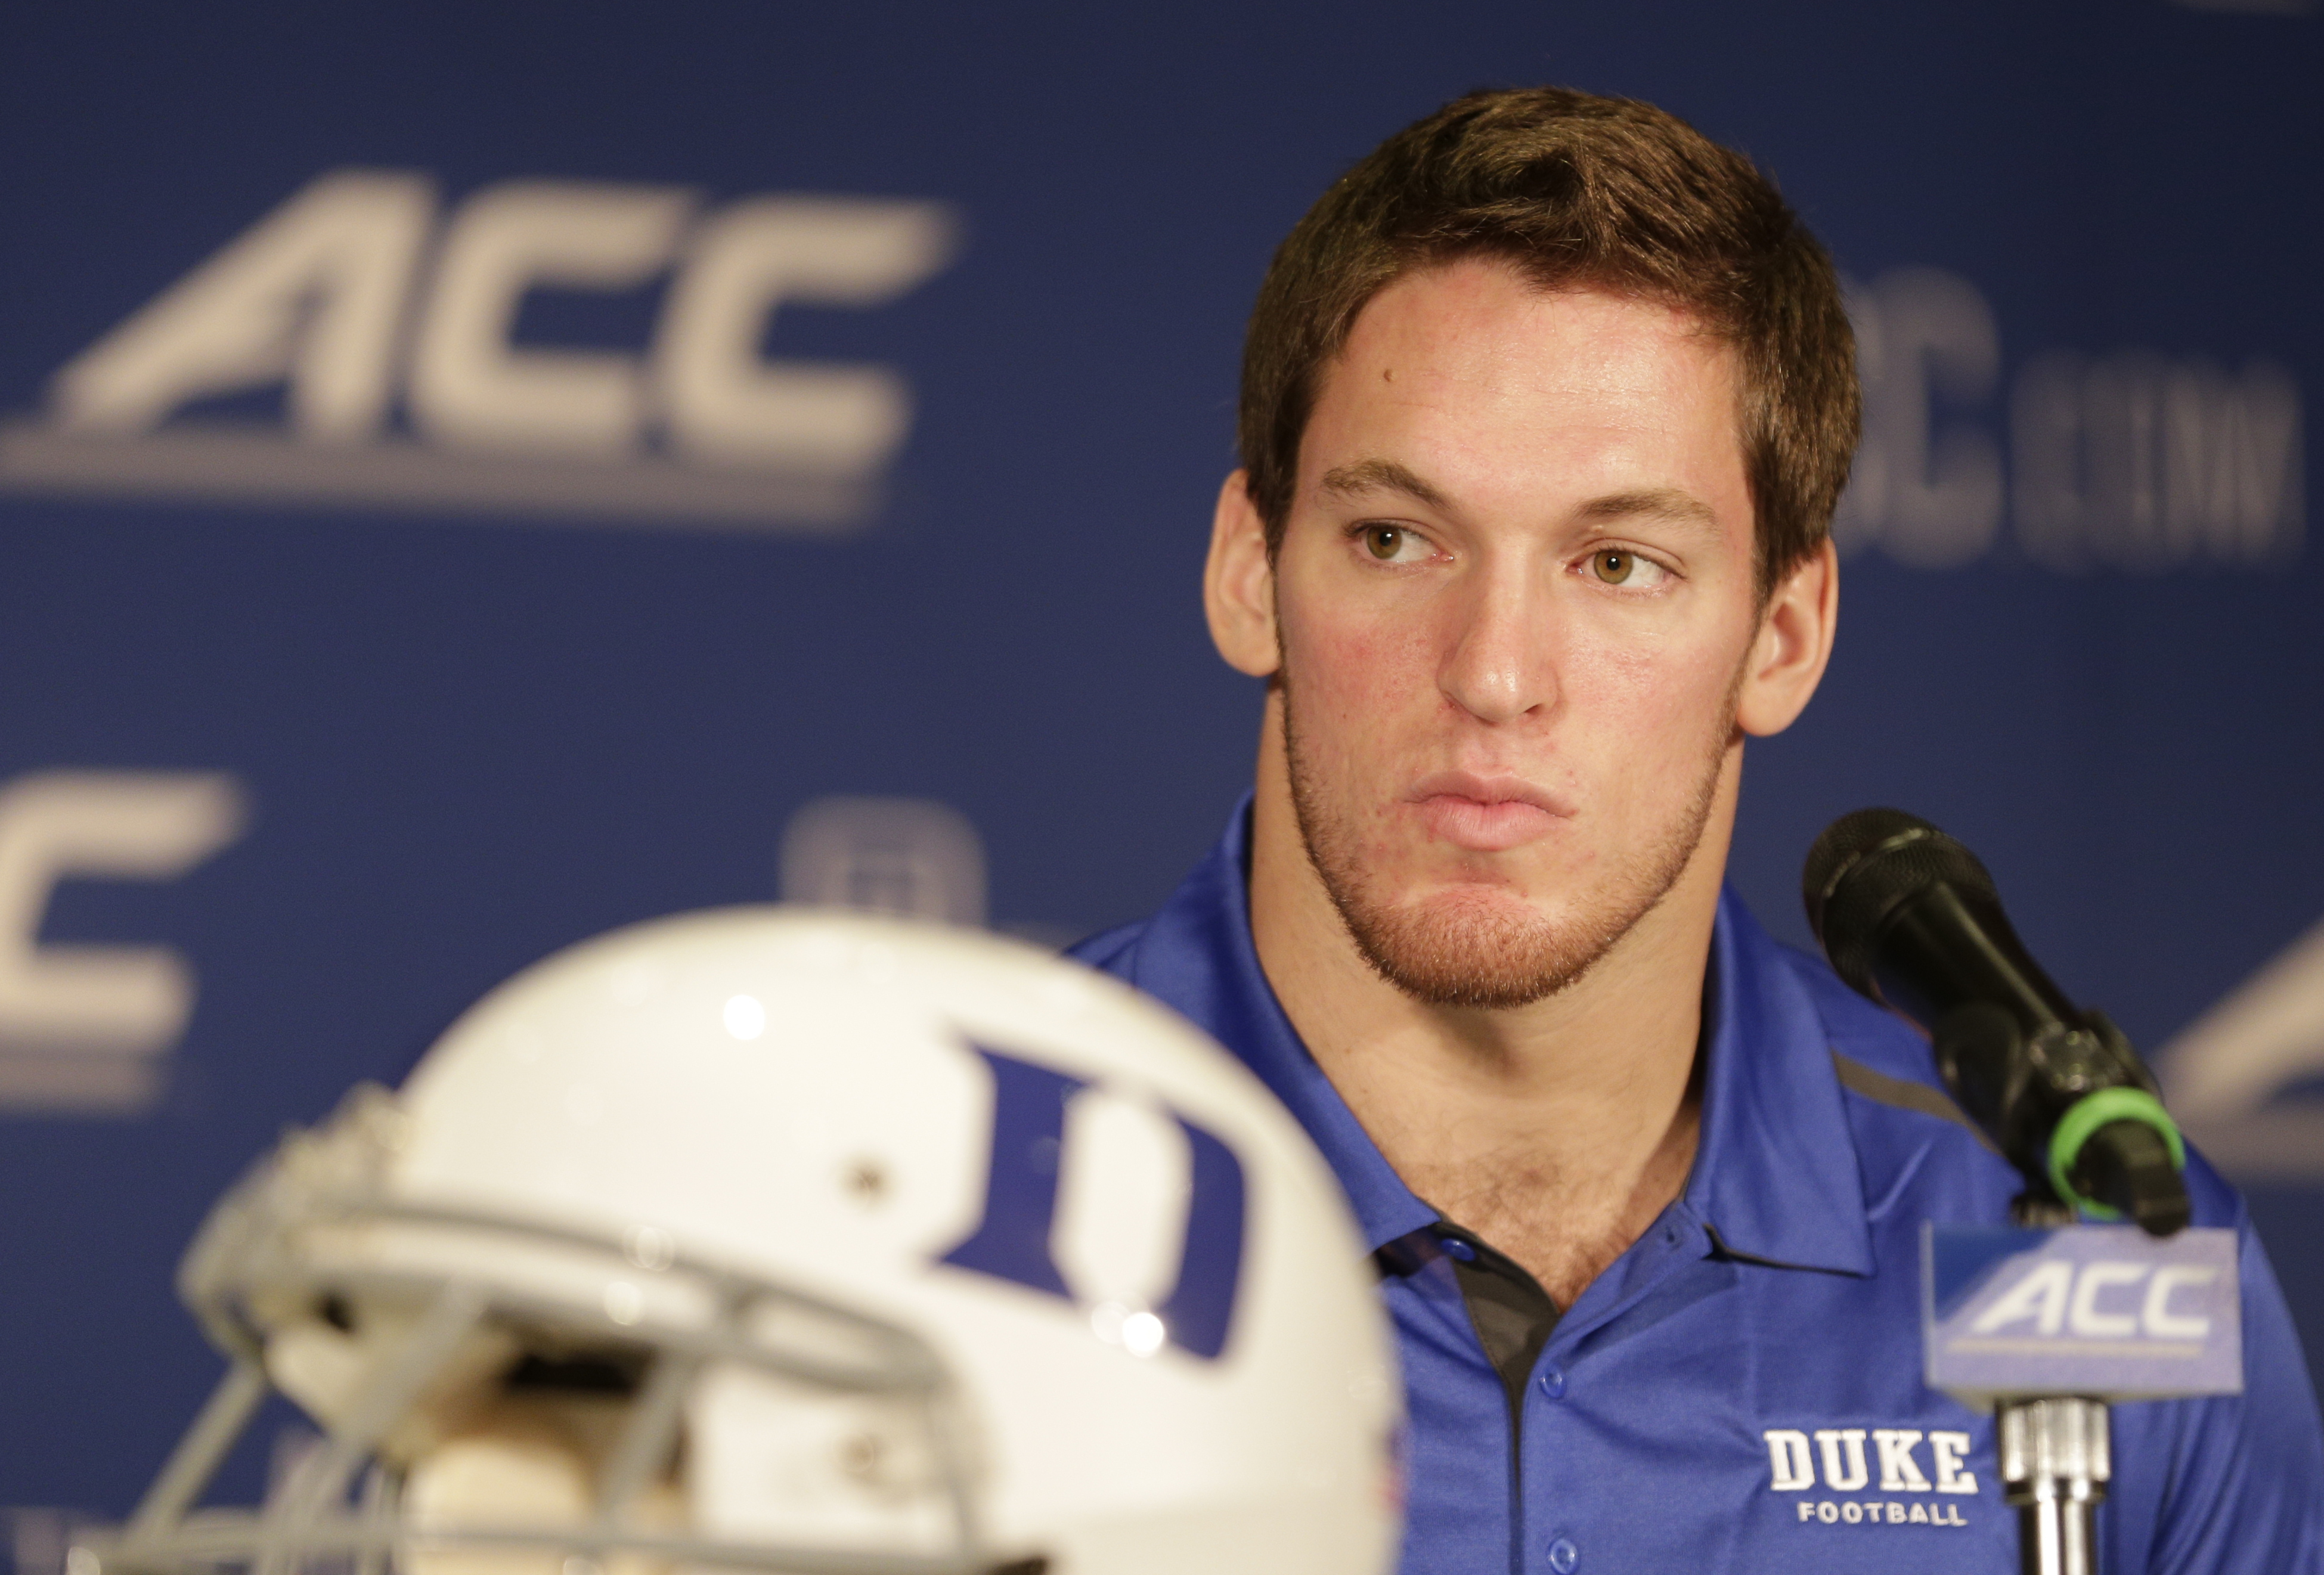 Duke's Kelby Brown answers a question during a news conference at the Atlantic Coast Conference Football kickoff in Greensboro, N.C., Sunday, July 20, 2014. (AP Photo/Chuck Burton)